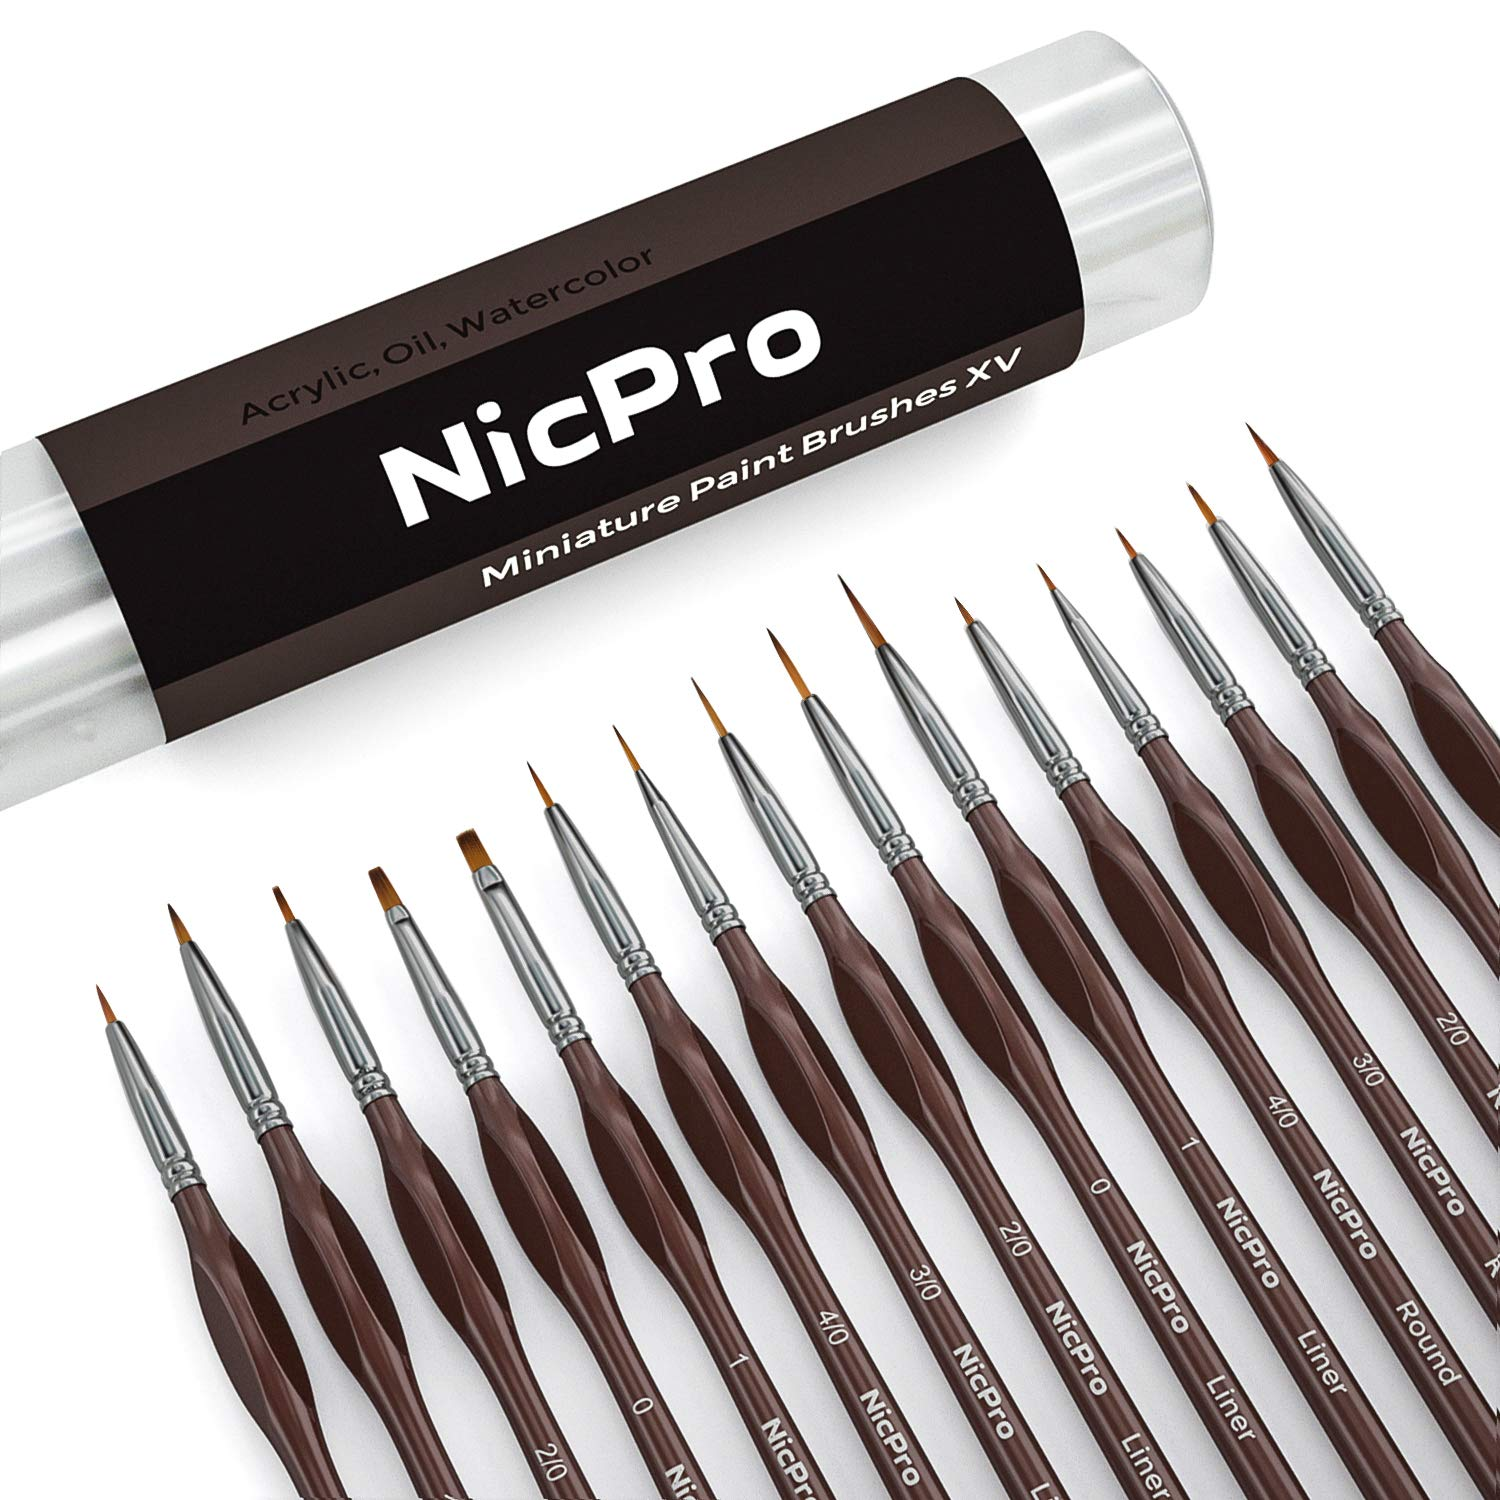 Nicpro Micro Detail Paint Brush Set,15 Tiny Professional Miniature Fine Detail Brushes for Watercolor Oil Acrylic,Craft Models Rock Painting & Paint by Number by Nicpro